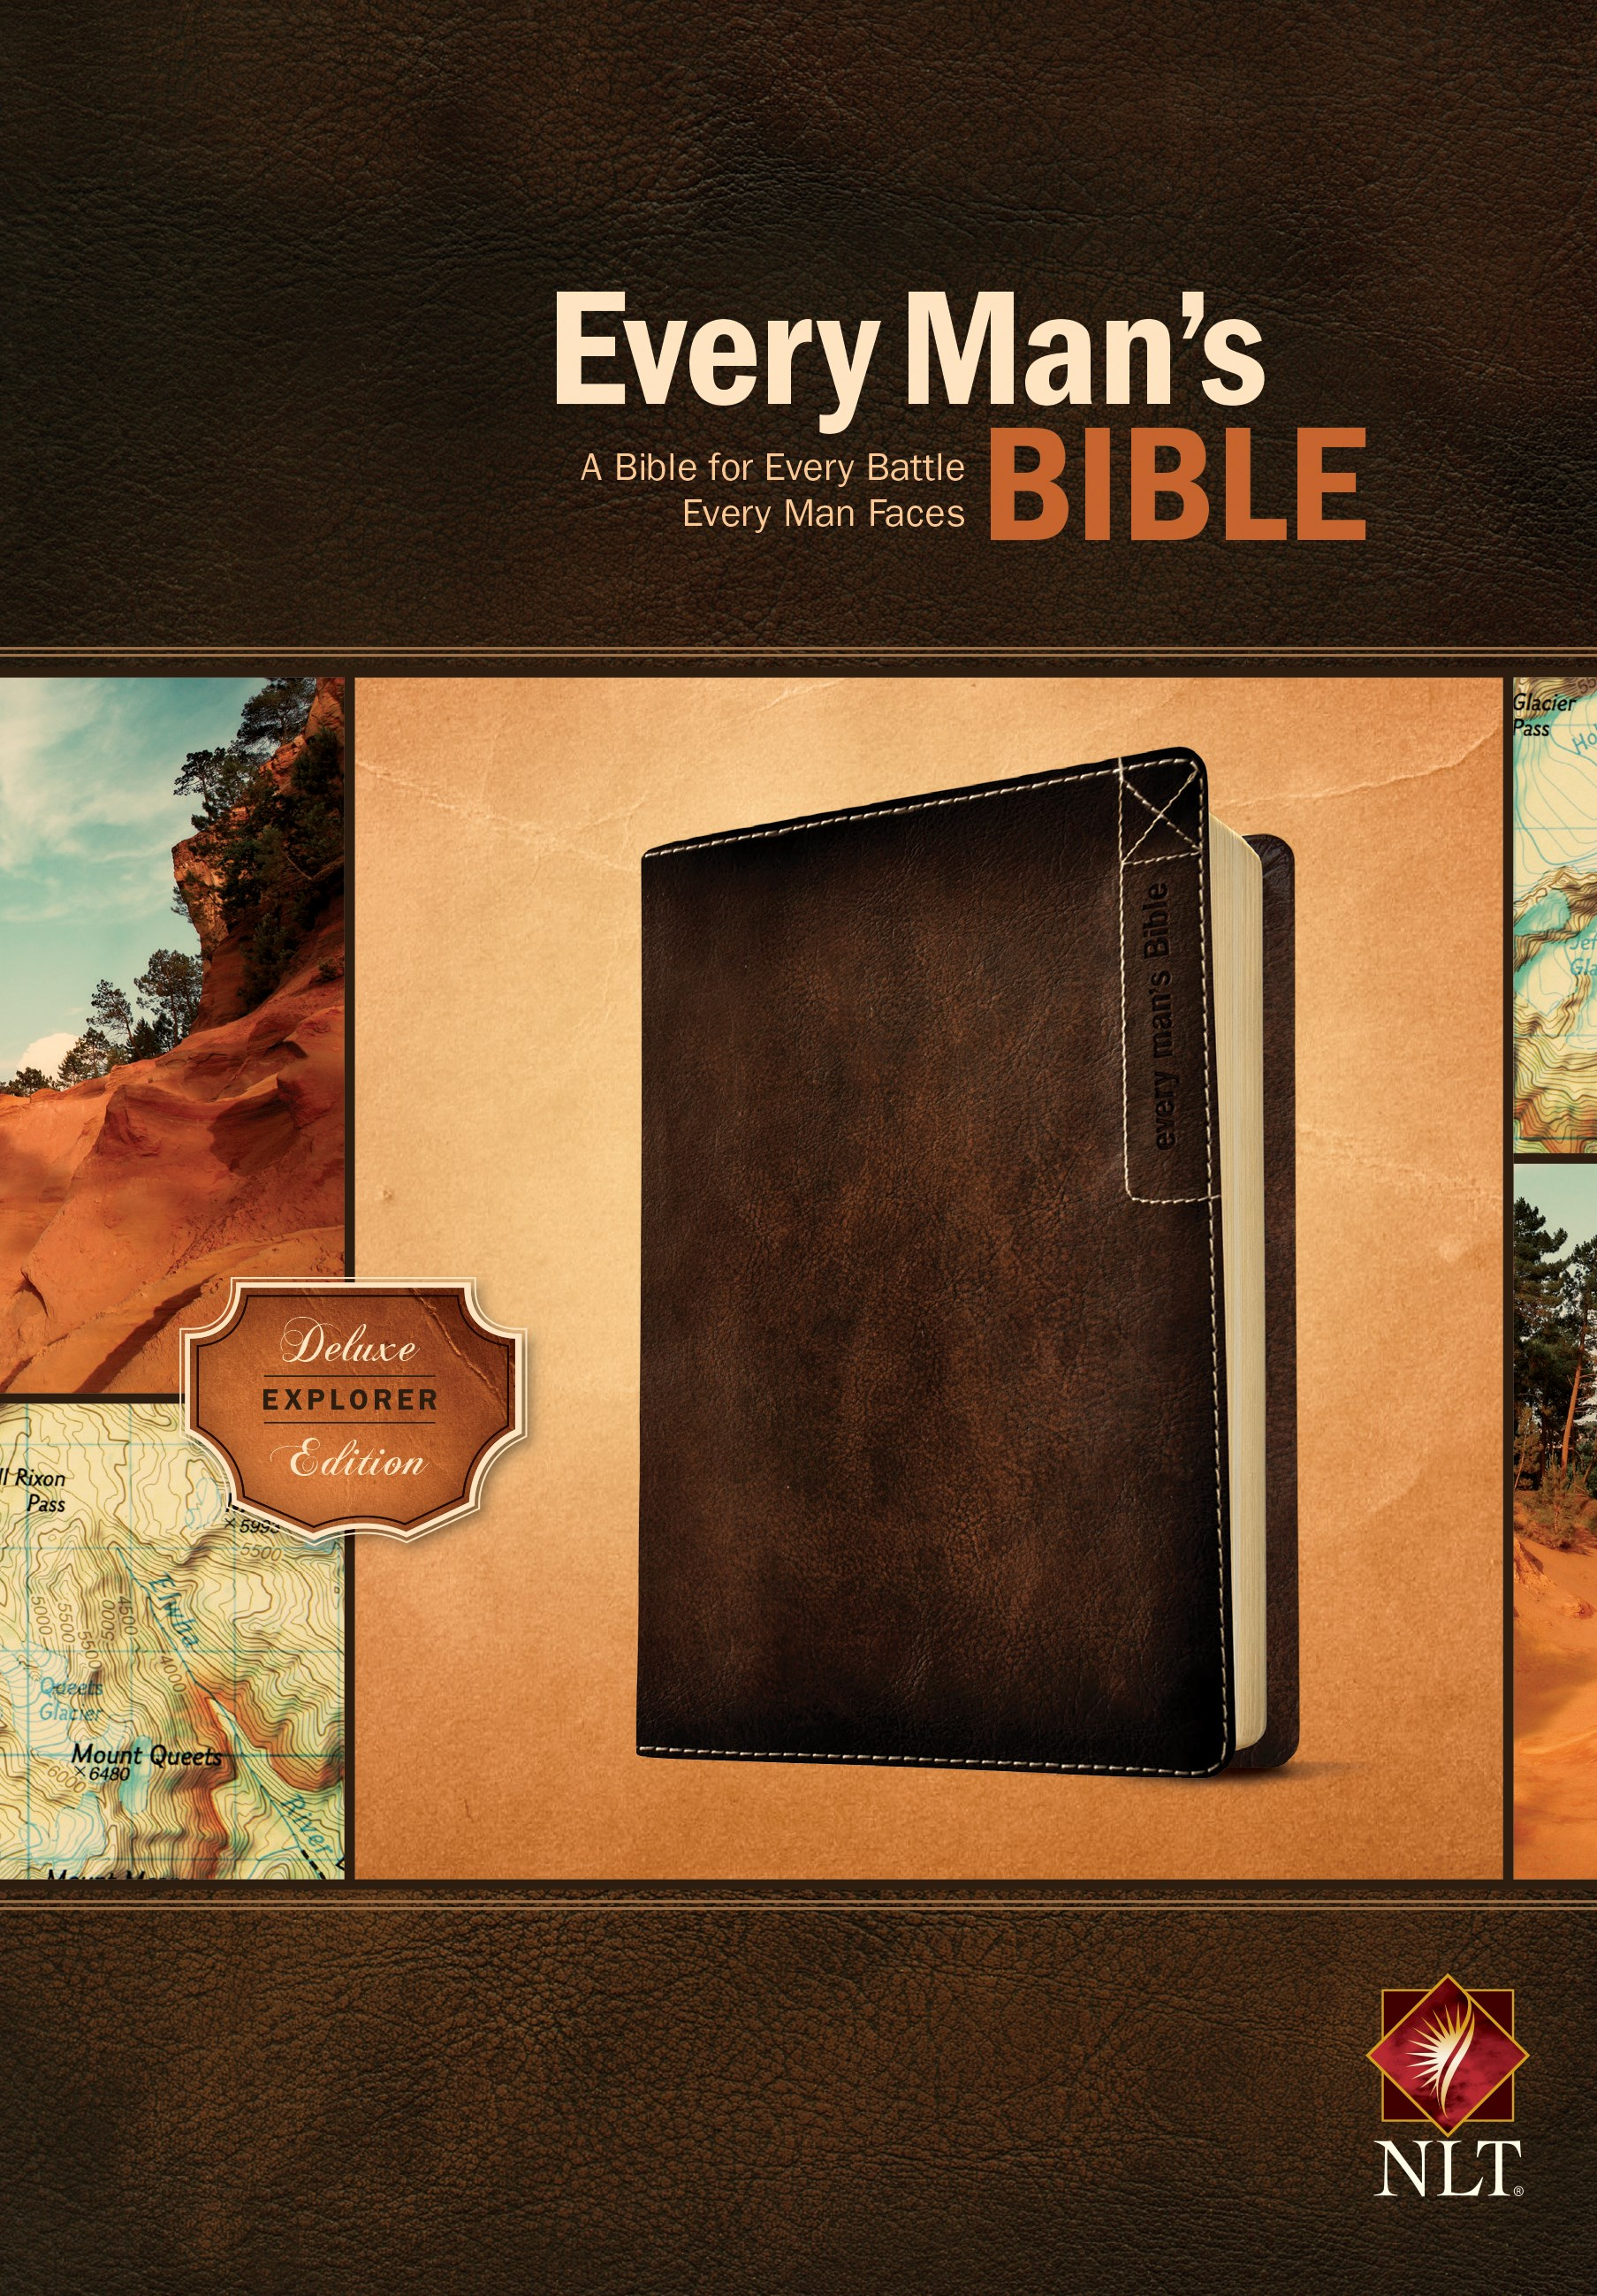 NLT Every Man's Bible: Deluxe Explorer Edition-Rustic Brown LeatherLike